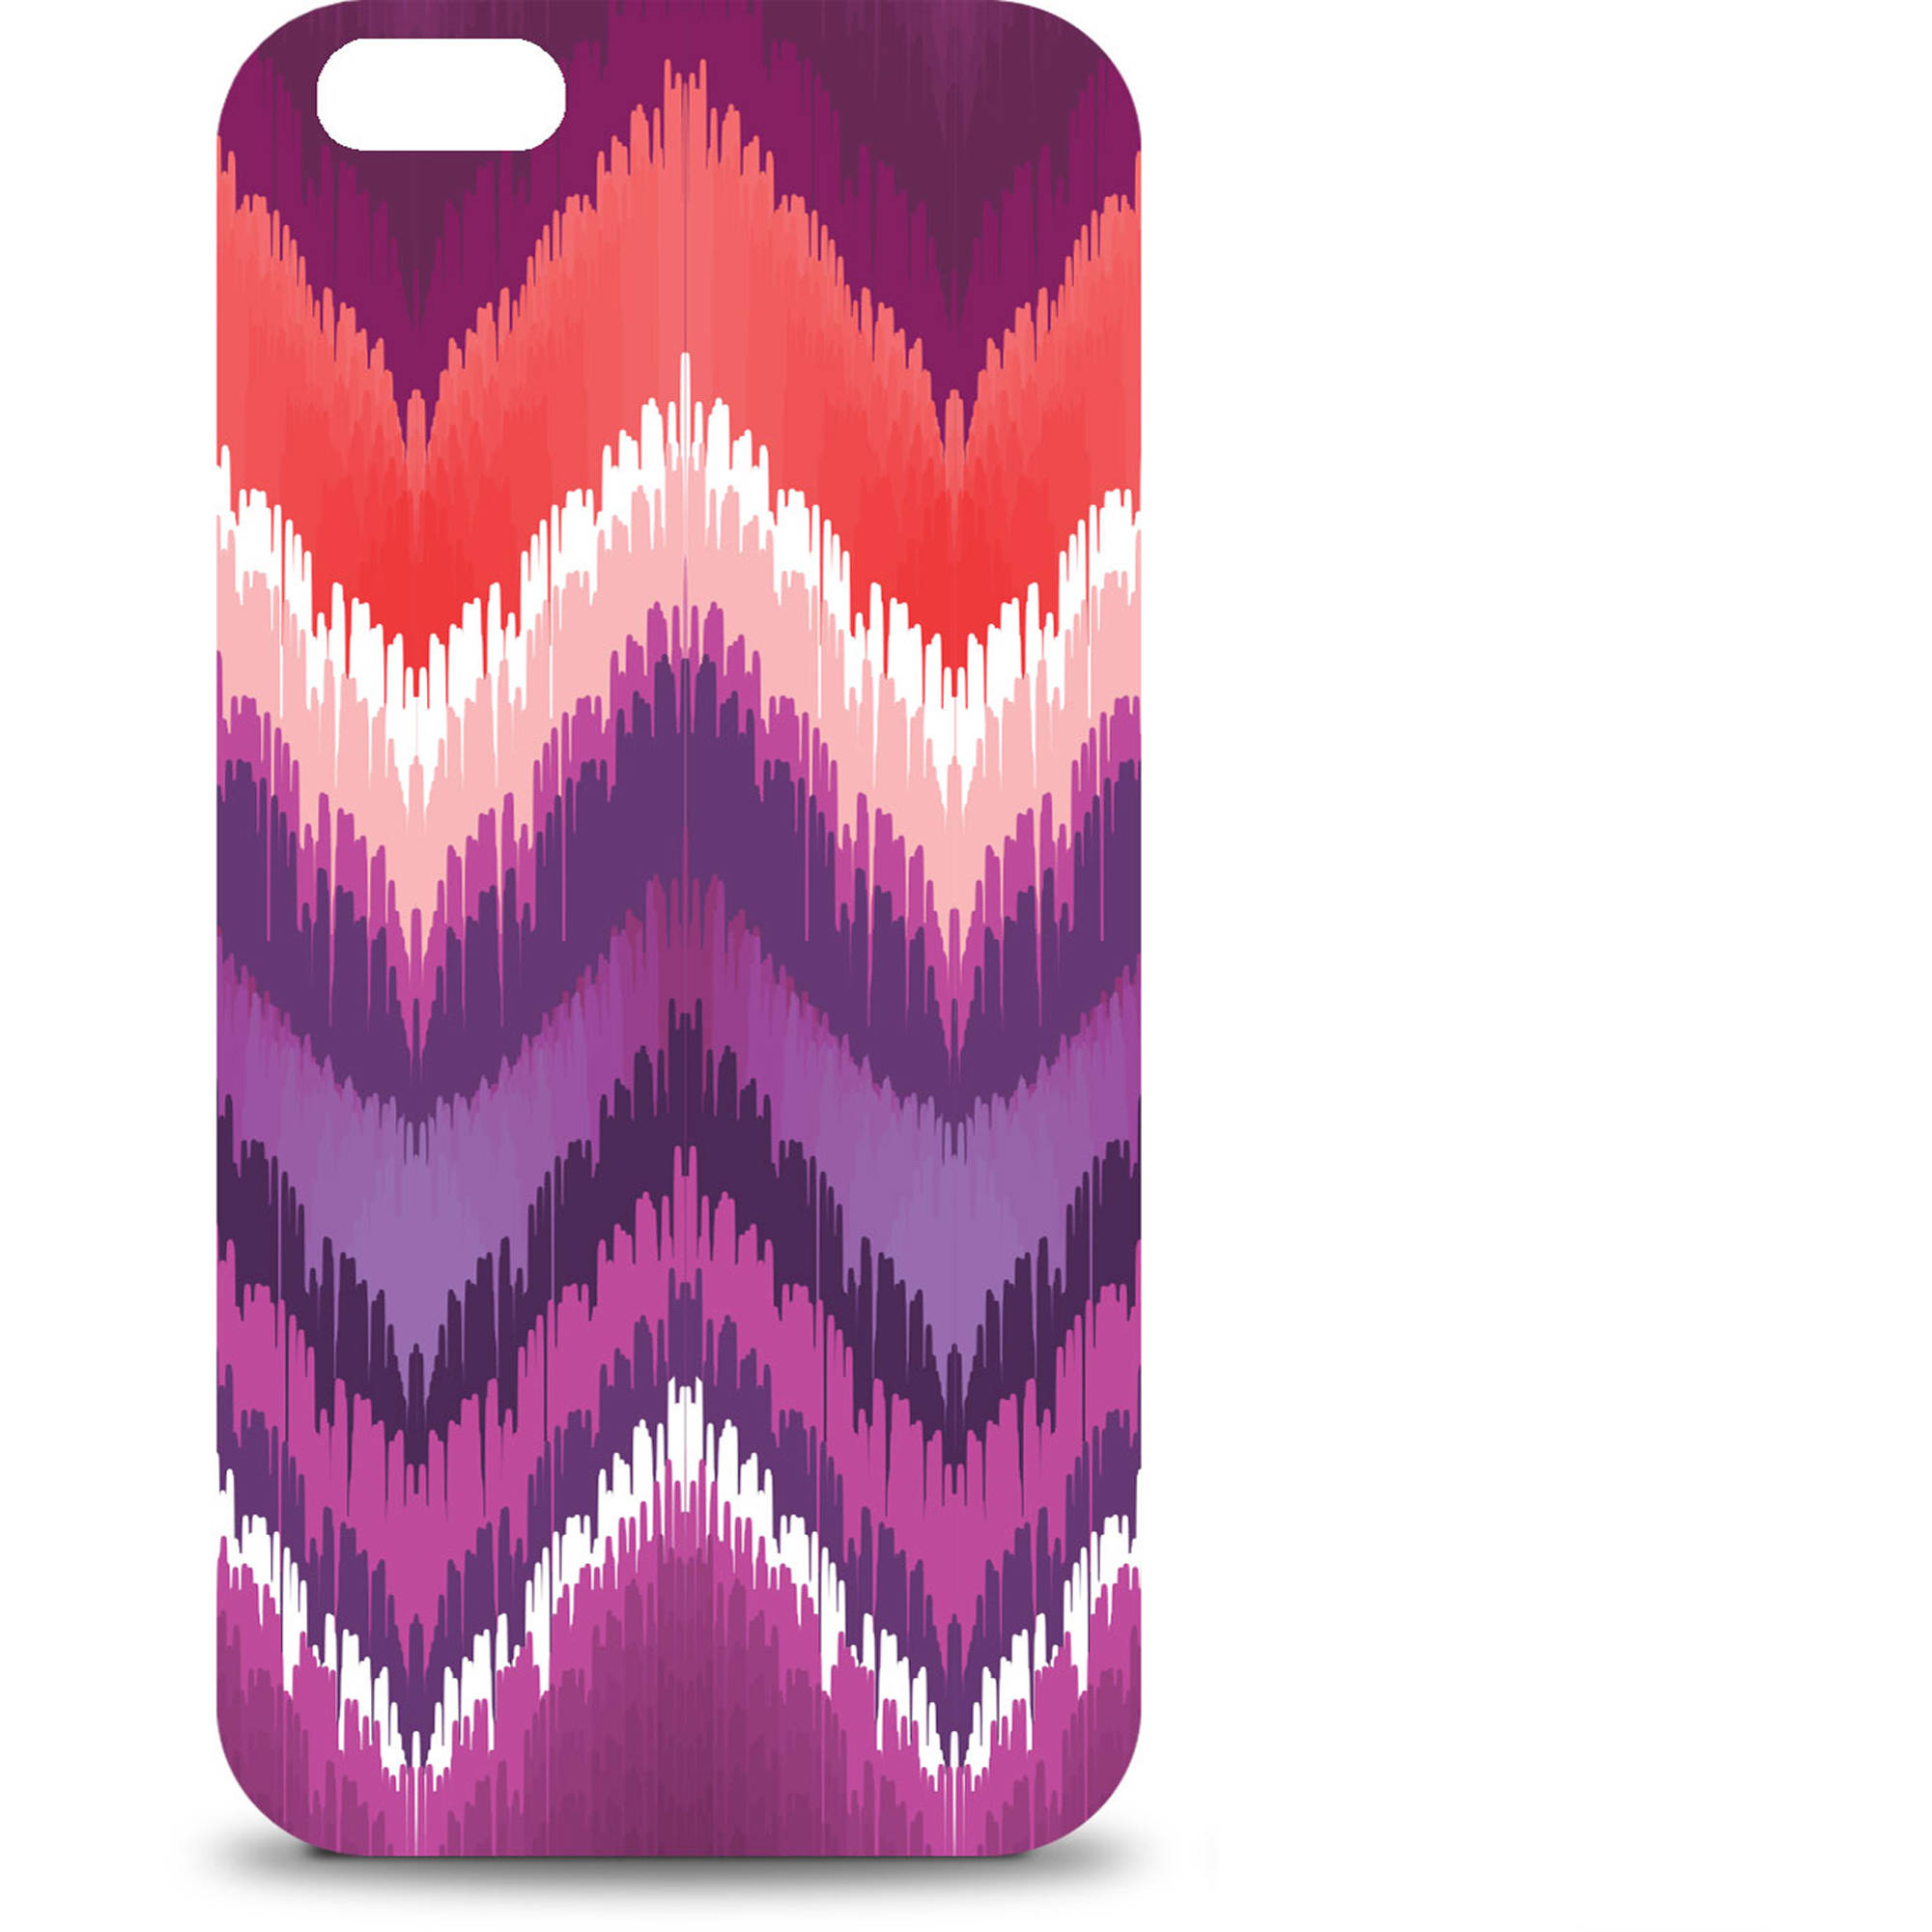 OTM Apple iPhone 6 Bold Collection Case, Peach/Purple